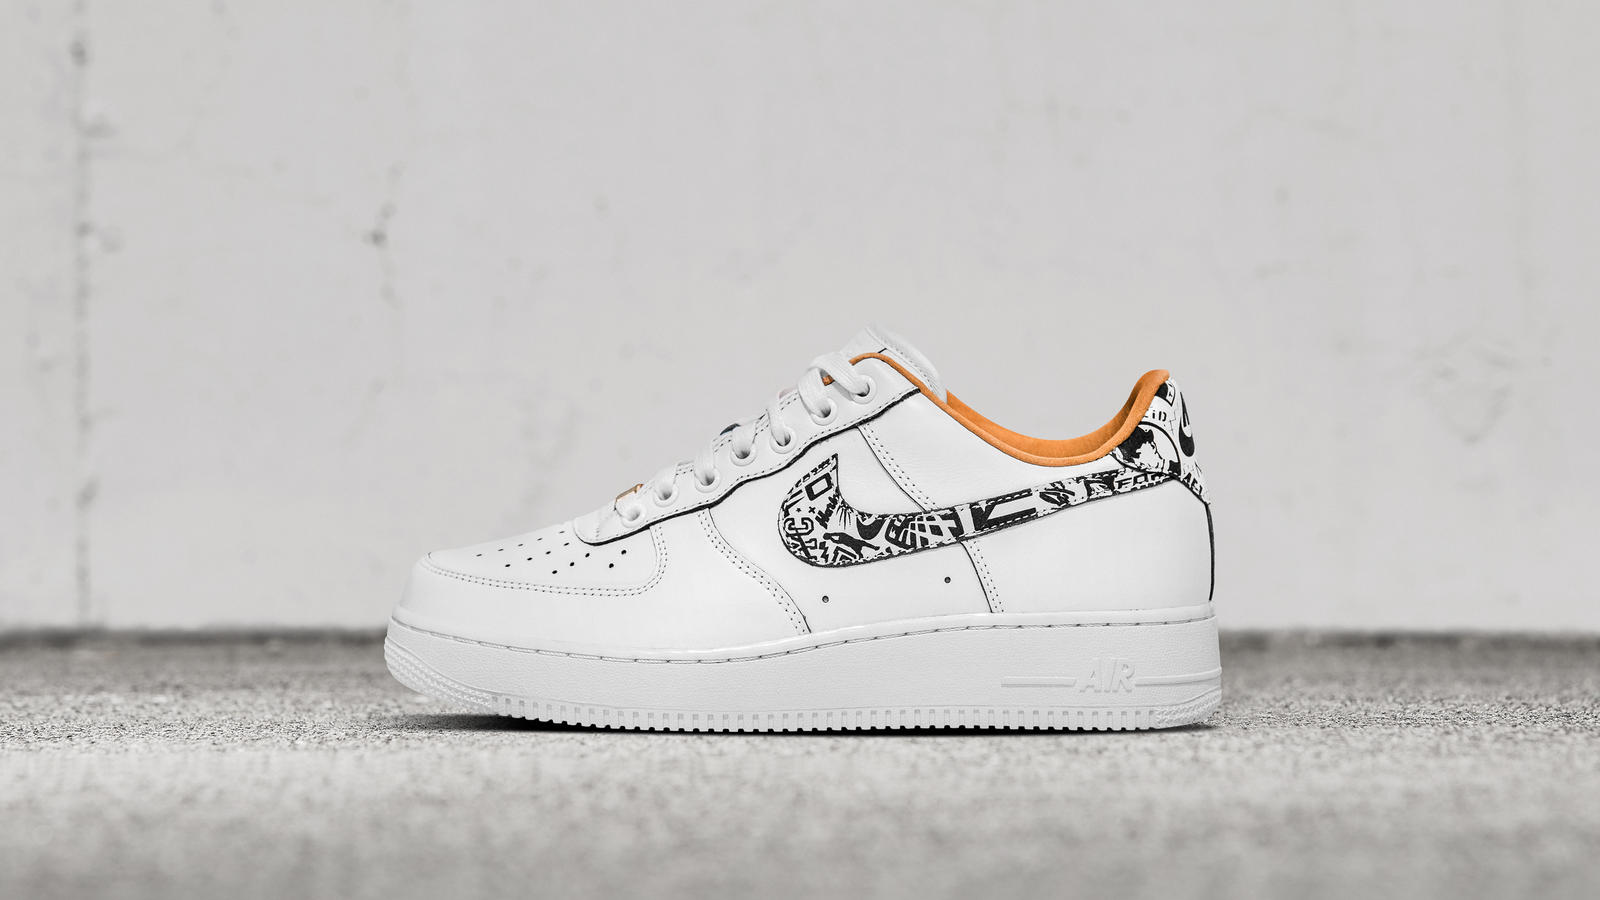 Nike Air Force 1 NYC